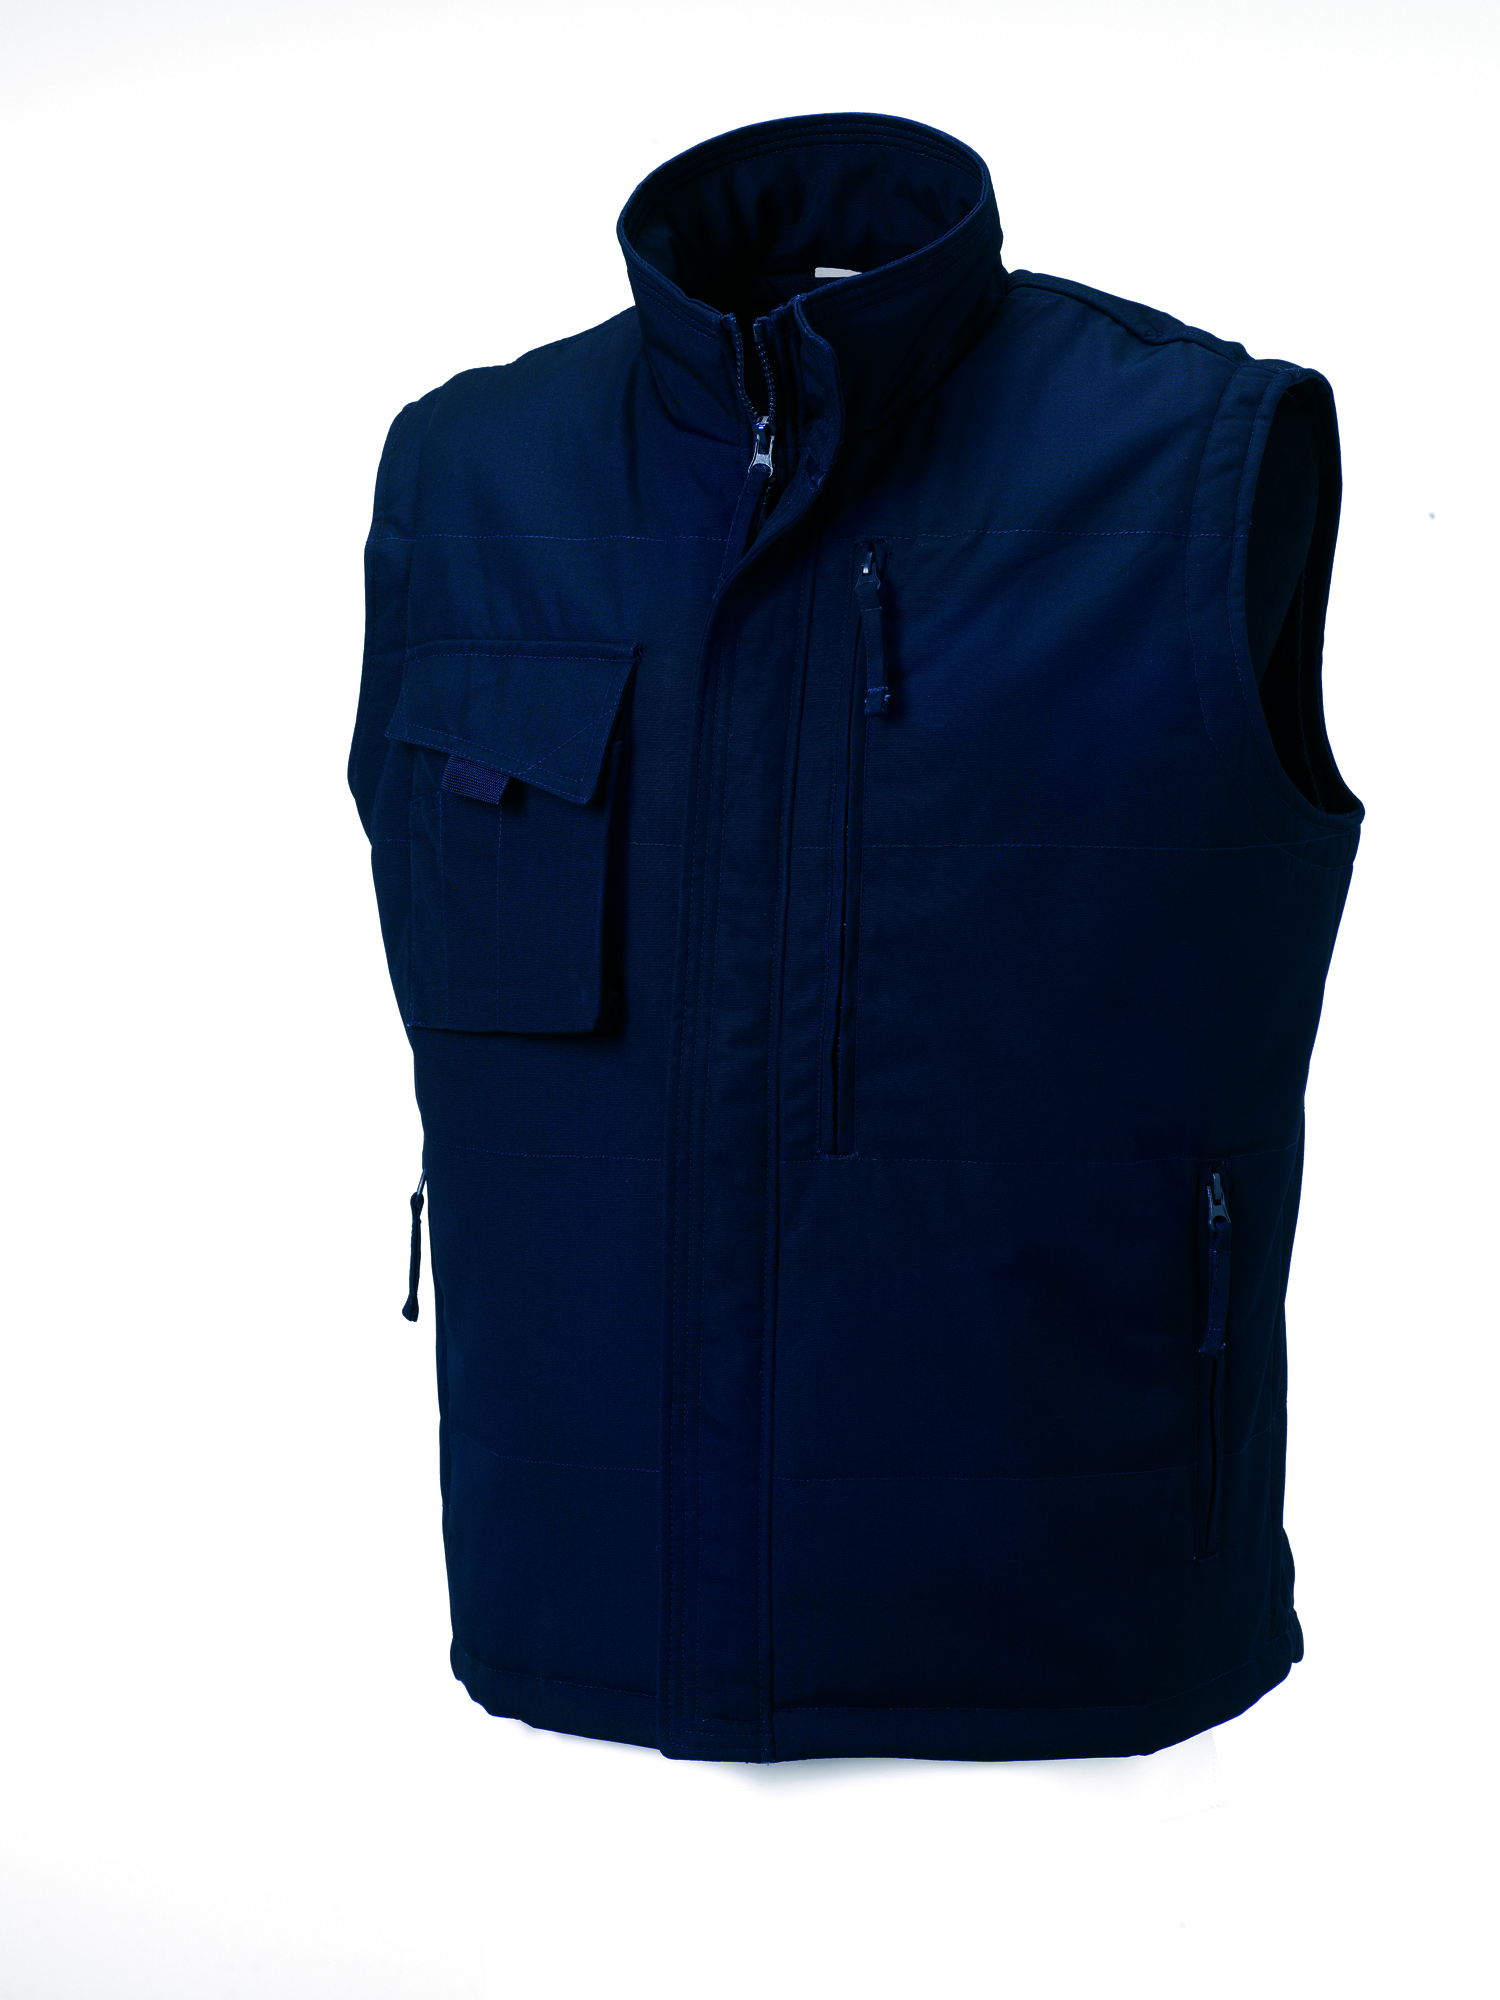 Heavy Duty Gilet - French Navy - 4XL